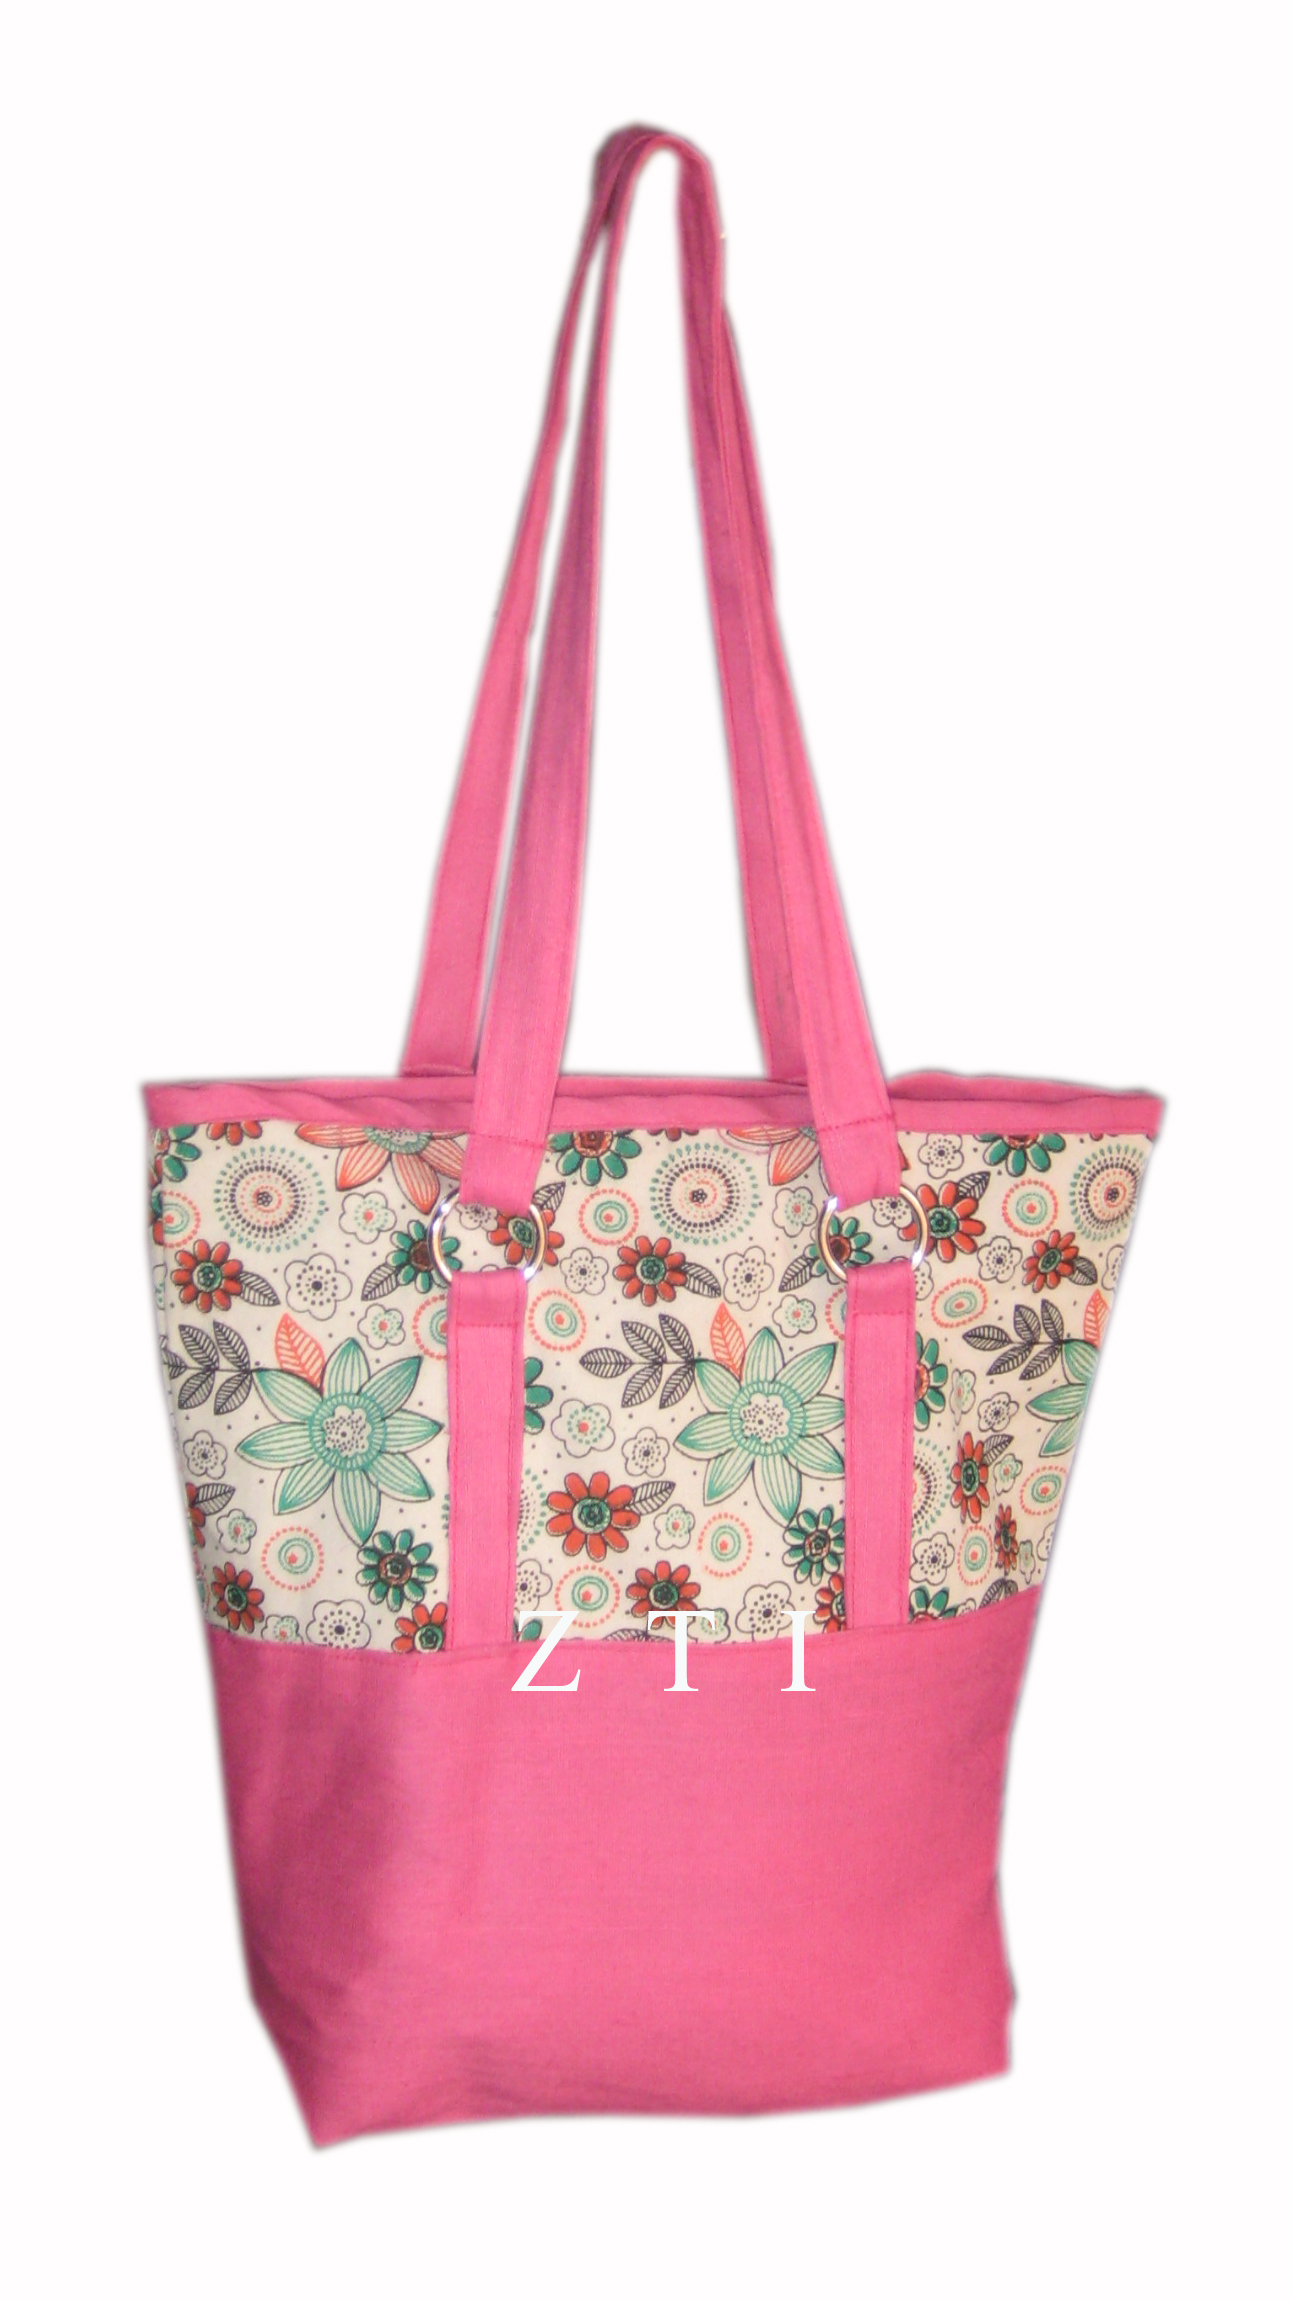 MODEL-NO.-CPR-1285-SIZE-36x3612cms.-PRICE-US-1.60